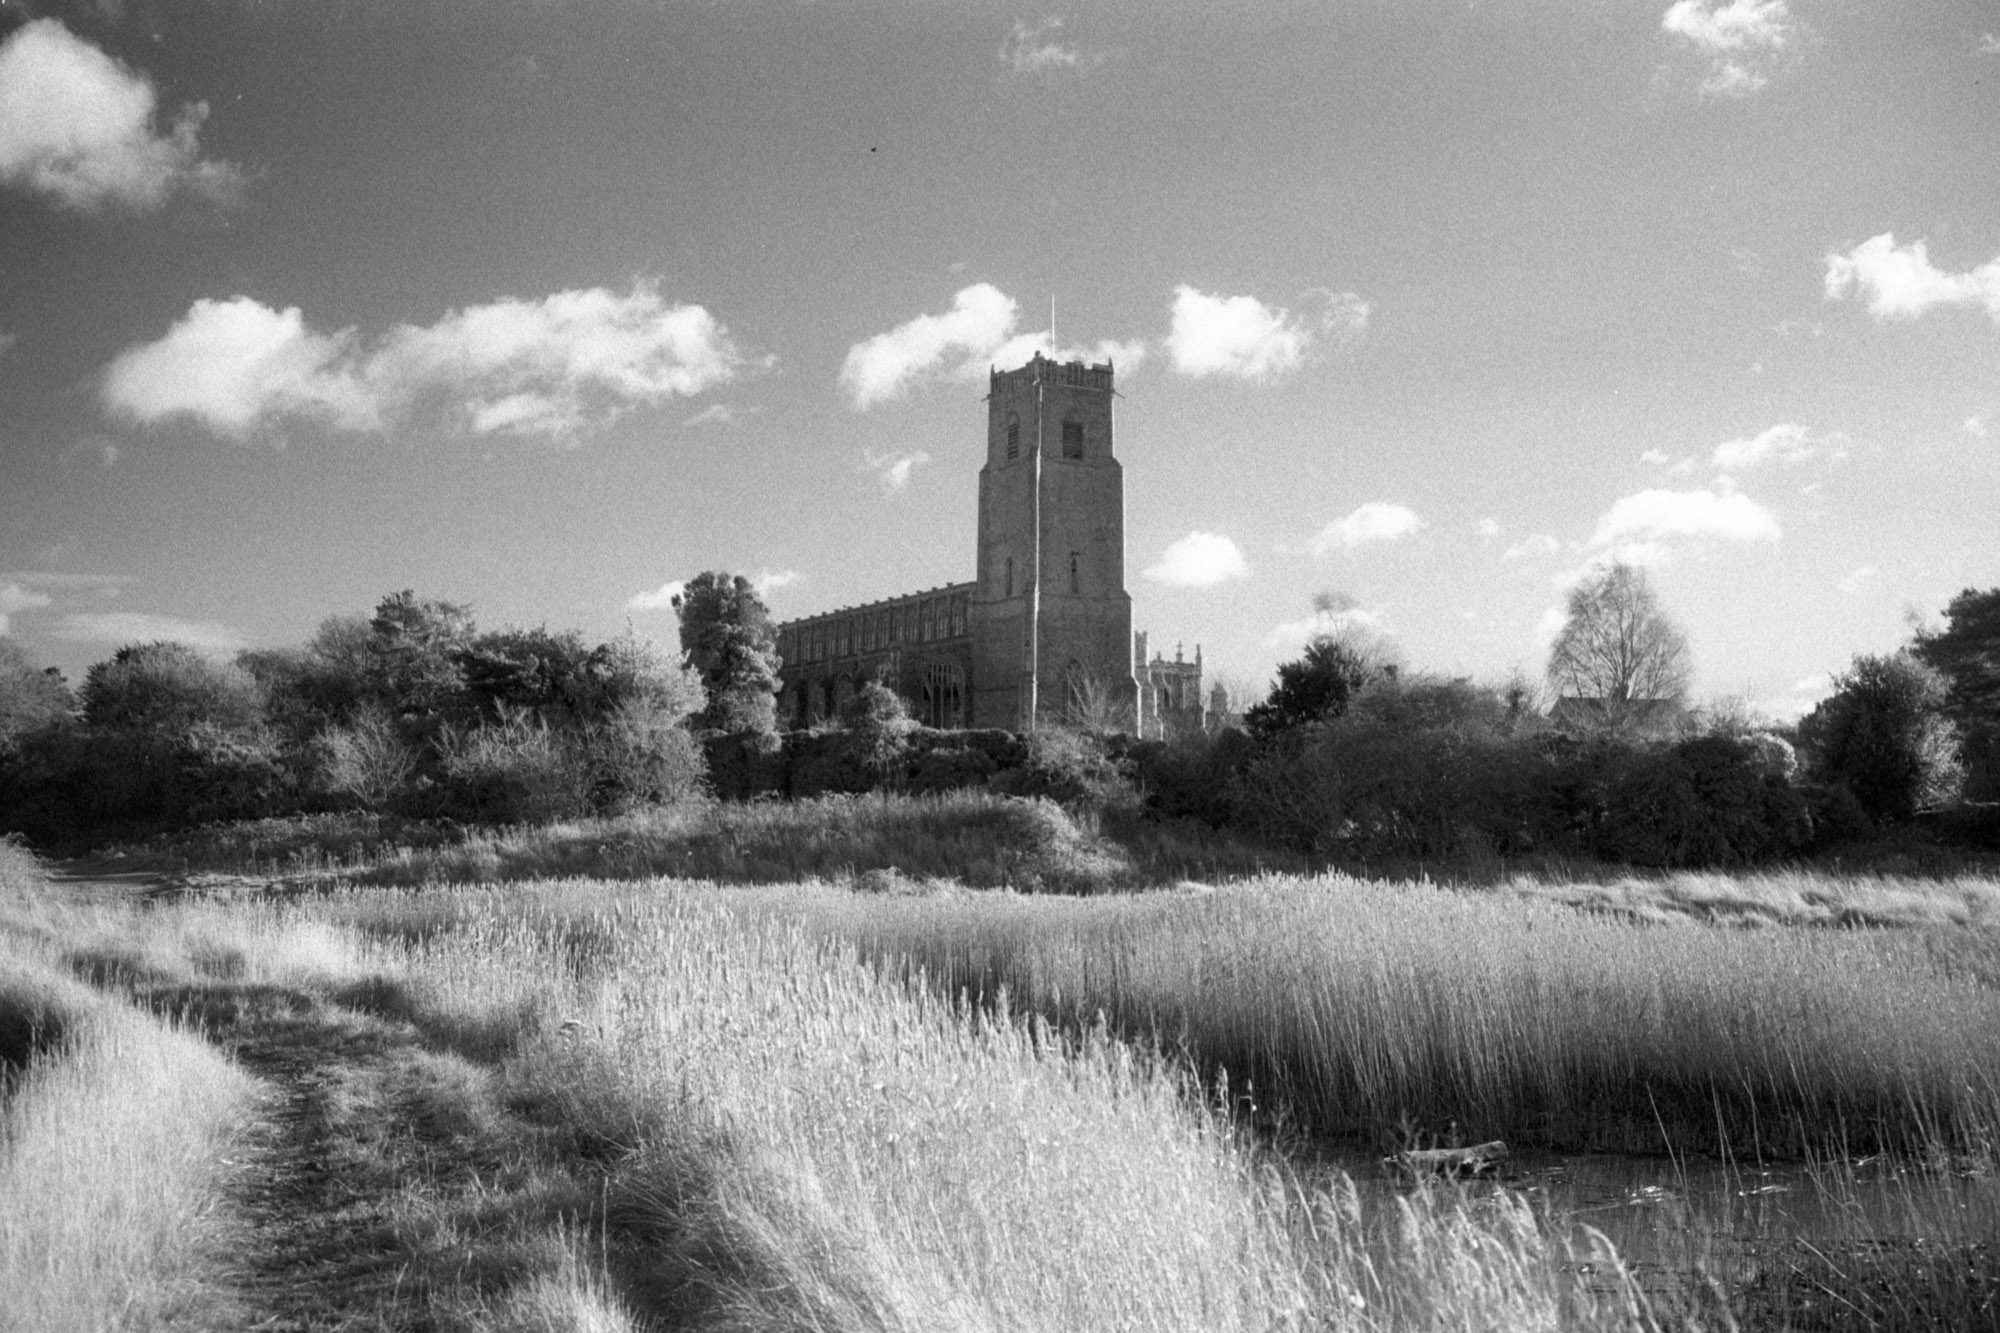 Black and white image on ILFORD film by Jason Avery